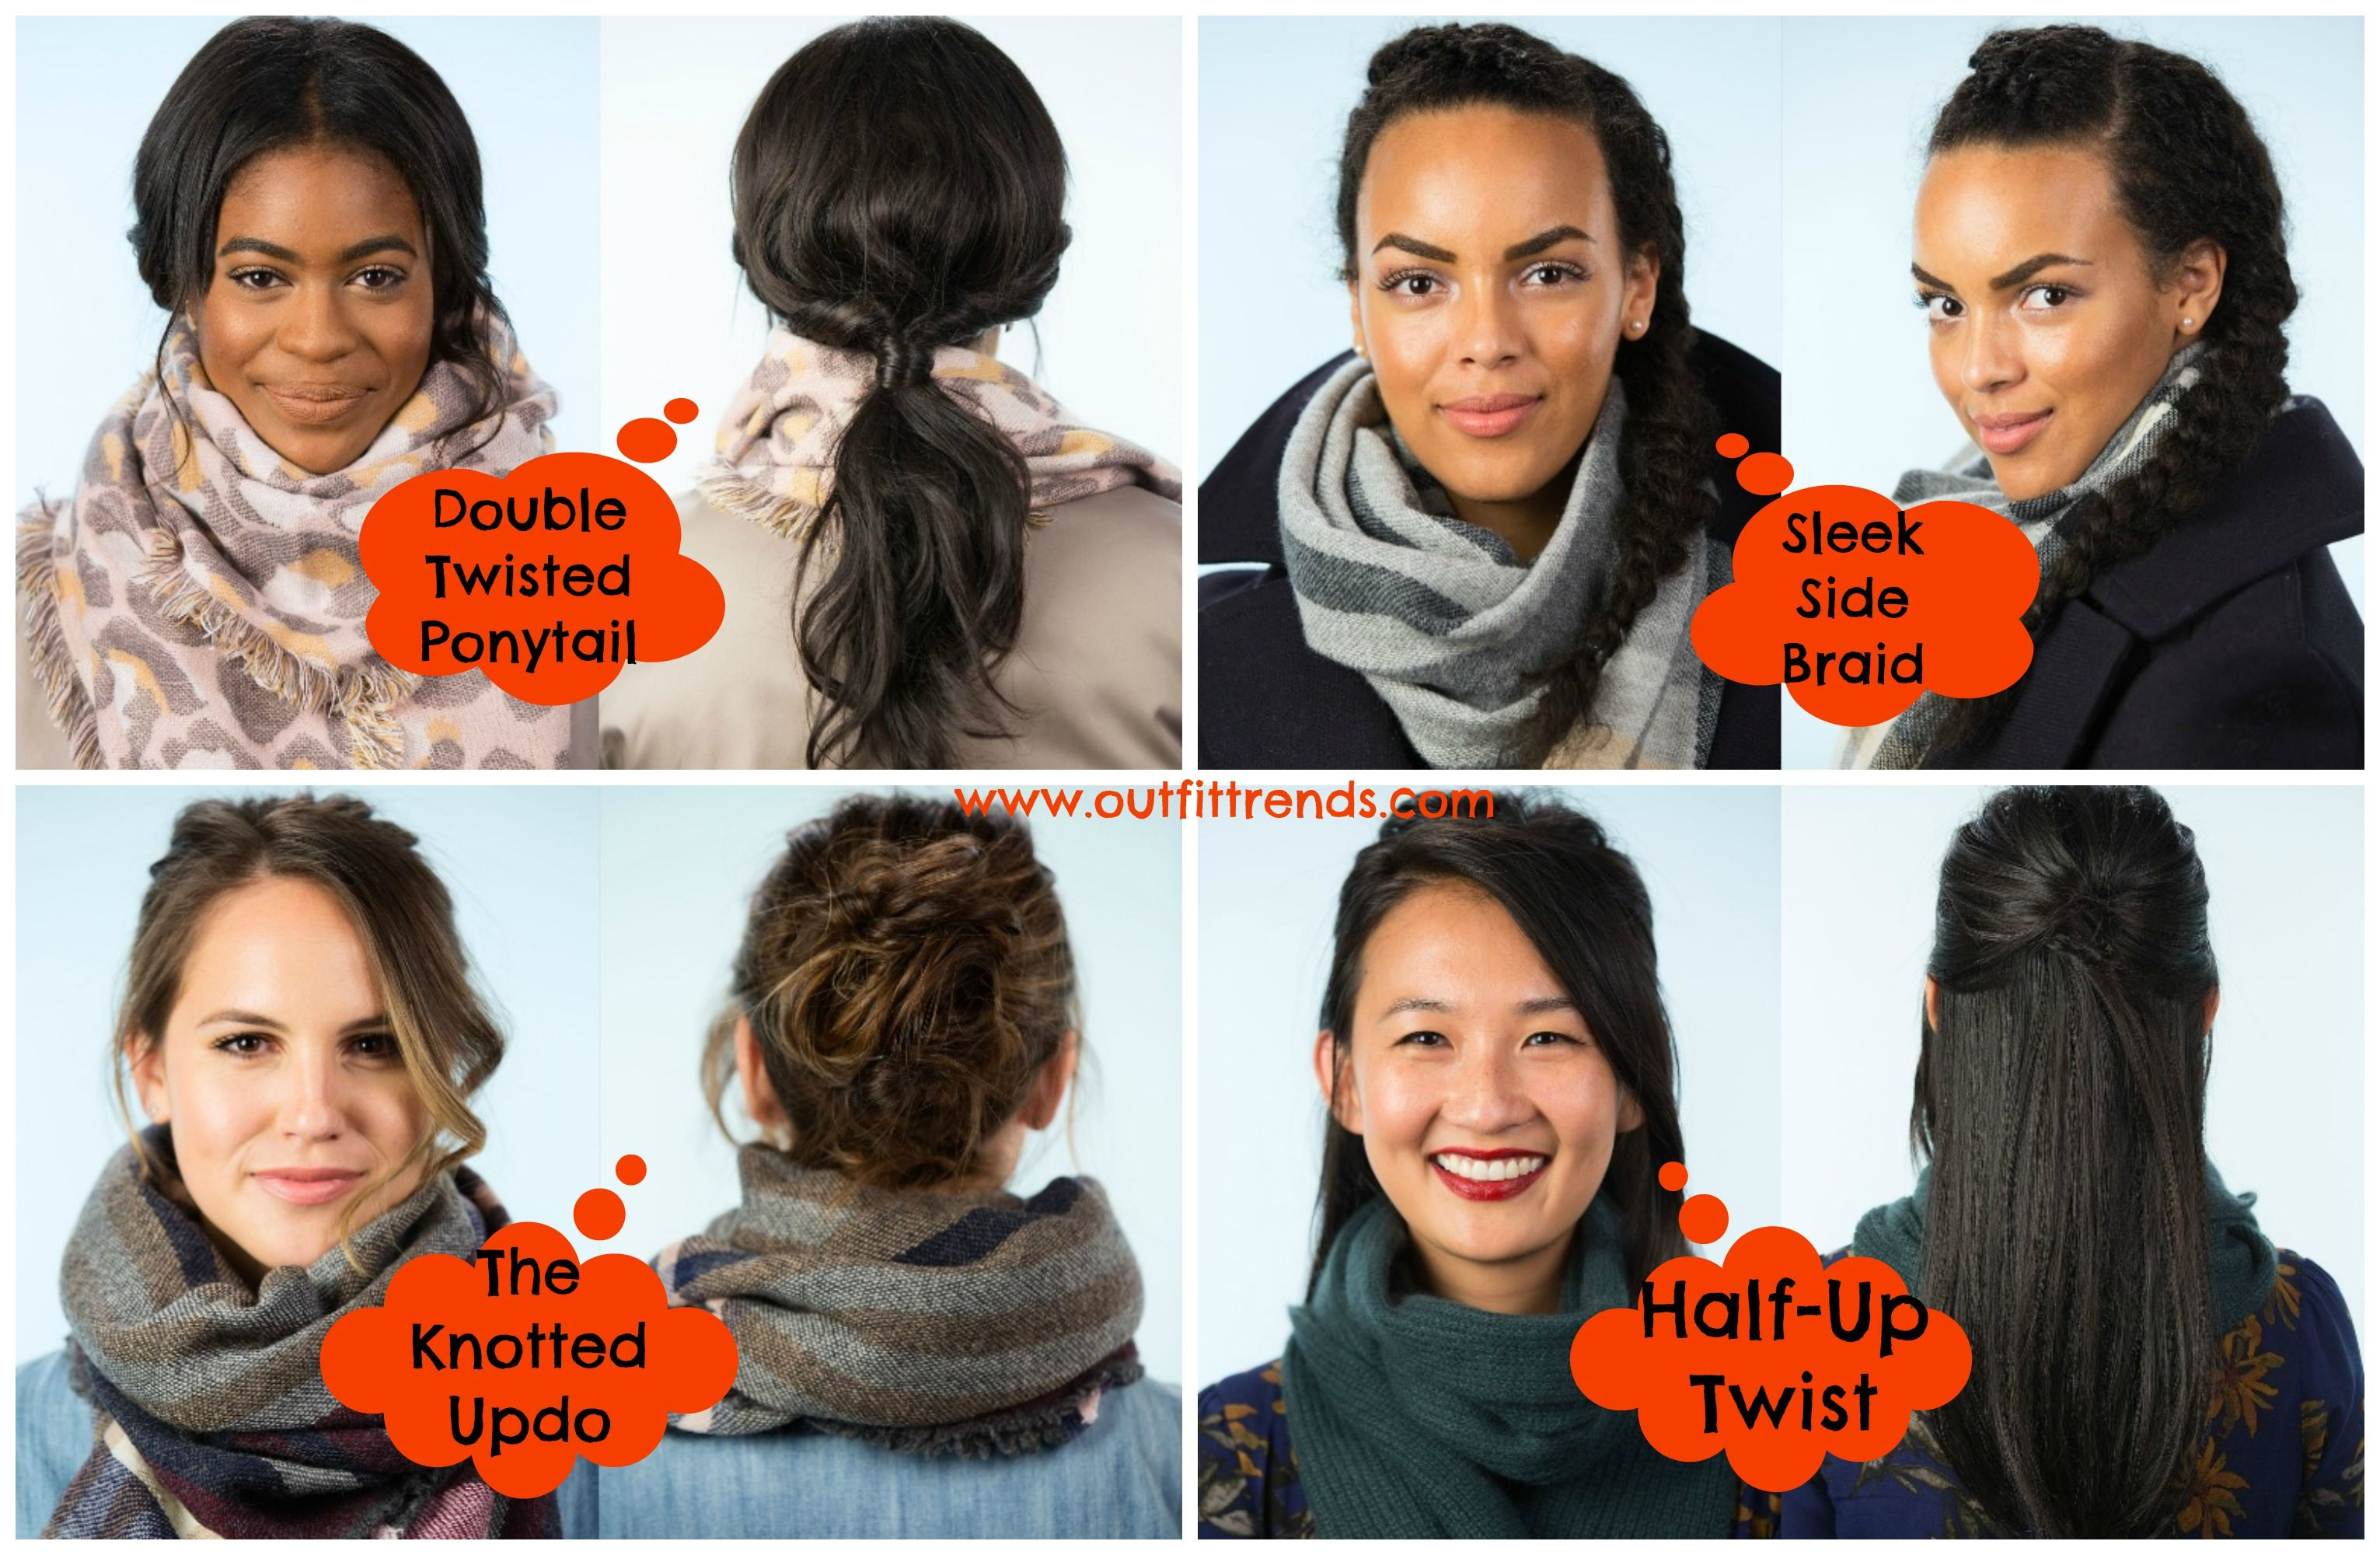 hairstyles-with-scarf Outfits with Scarves-18 Chic Ways to Wear Scarves for Girls